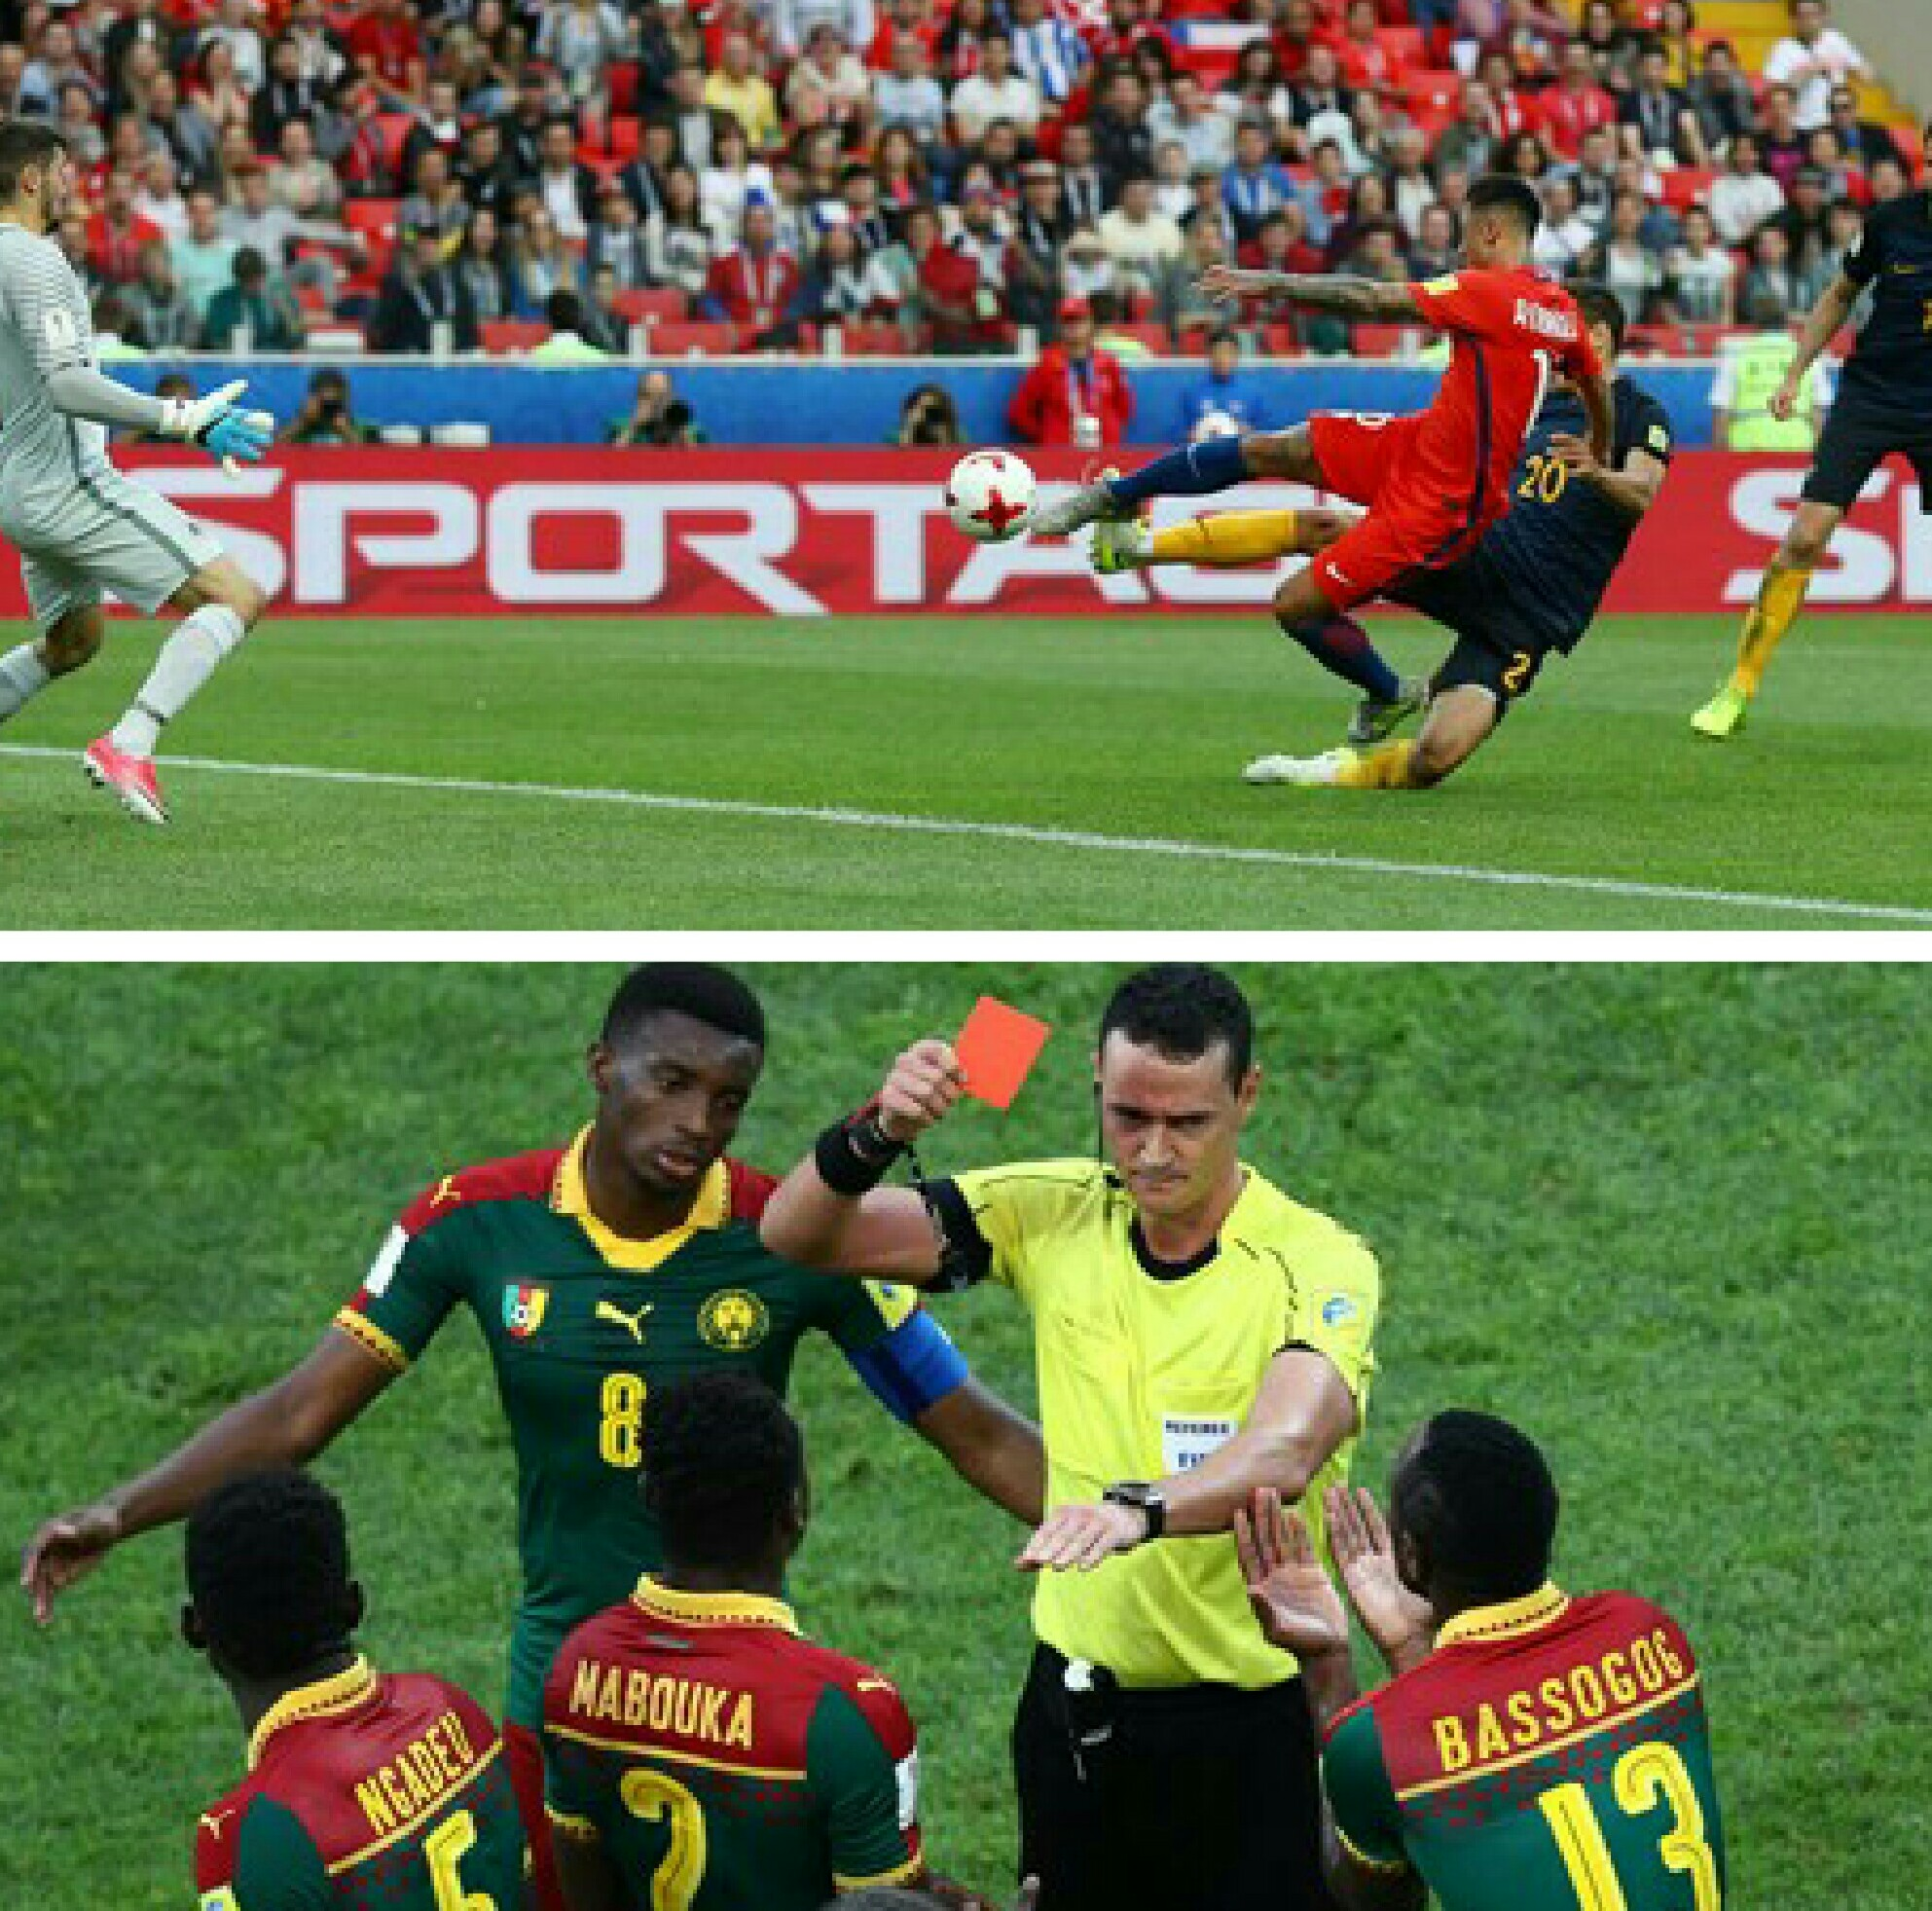 Confed. Cup: Cameroon Crash Out As Germany, Chile Progress To Semis